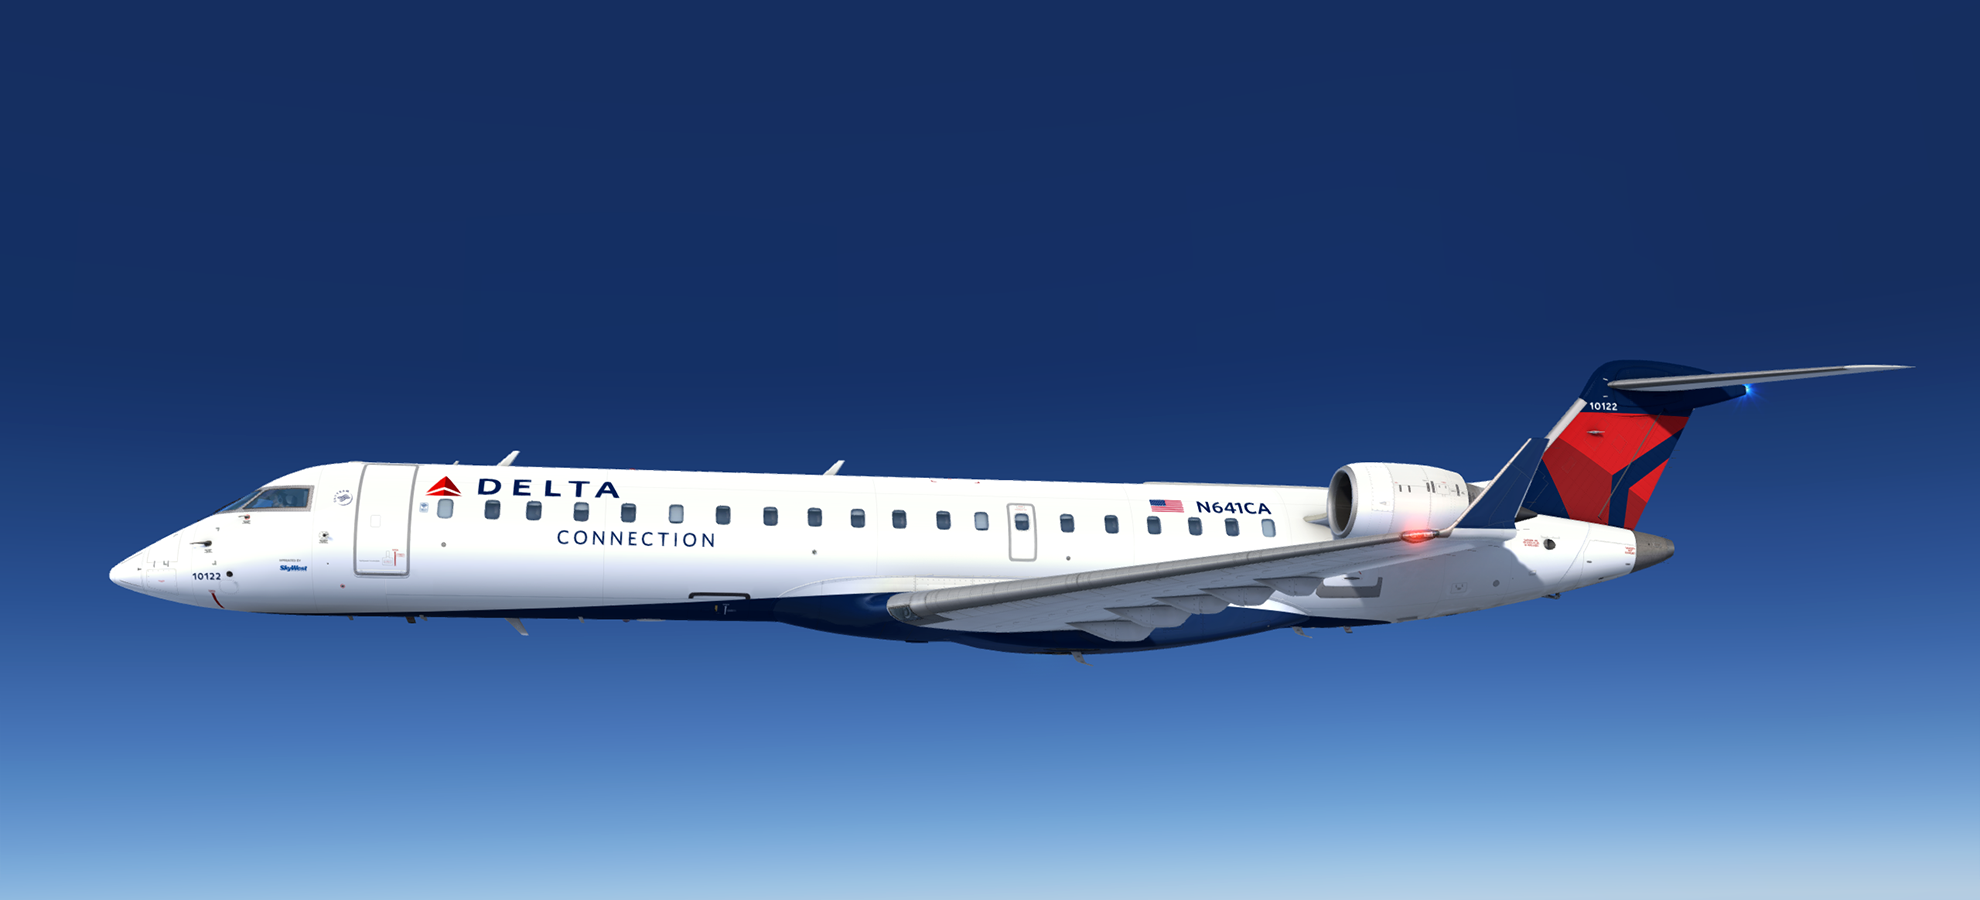 iniBuilds - Aerosoft CRJ Liveries